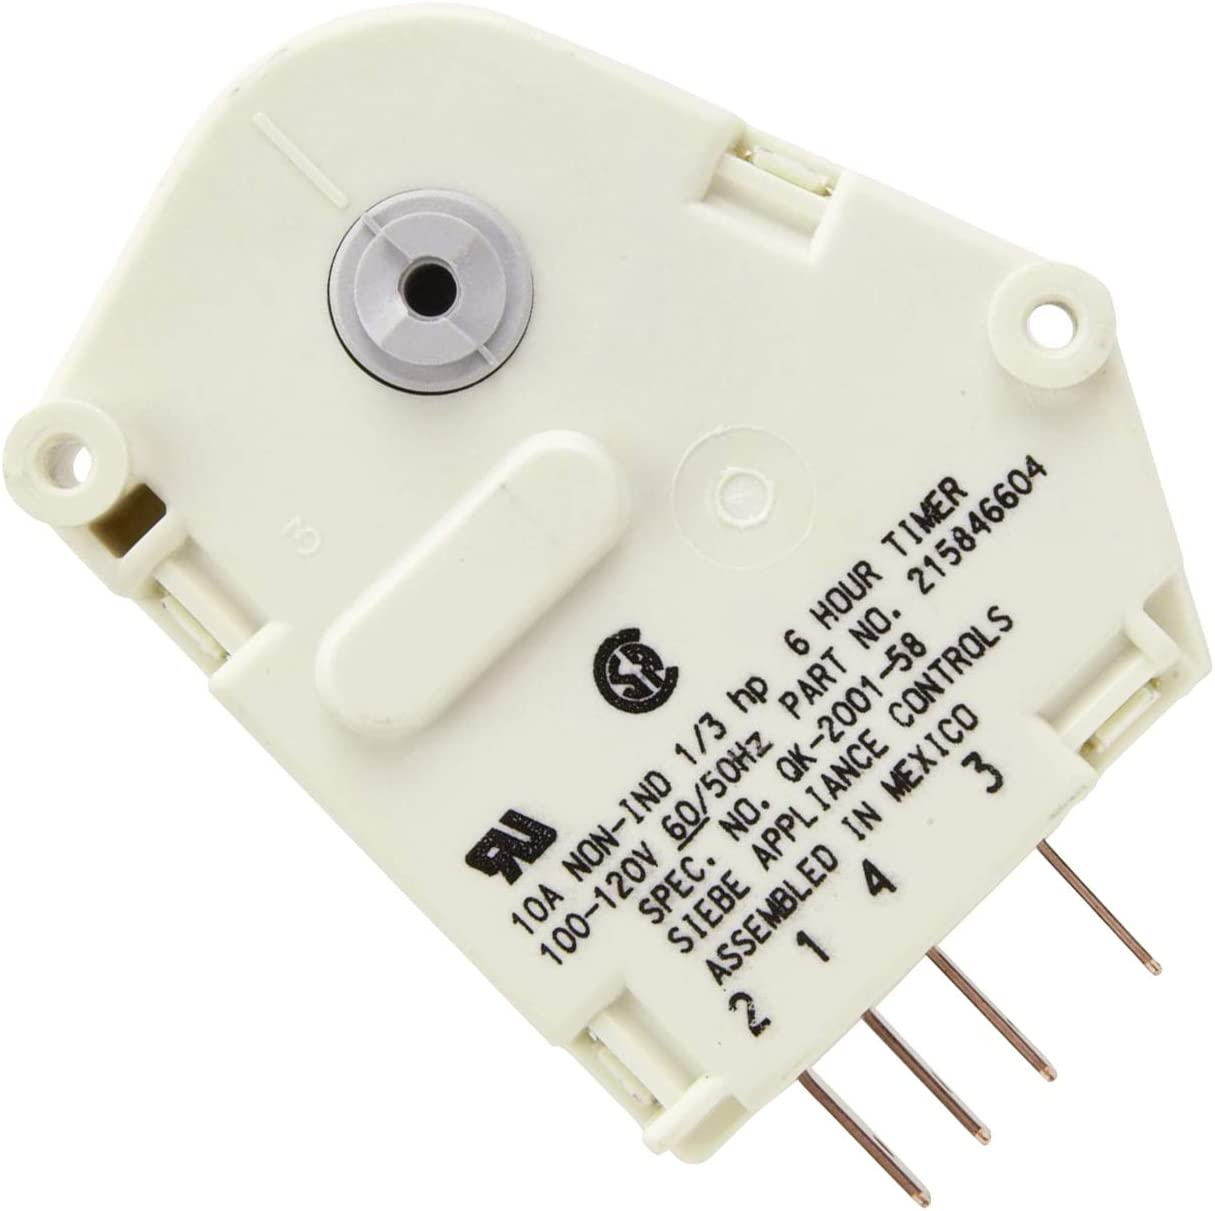 215846604 Refrigerator Defrost Timer Replacement Part by Romalon Compatible With Frigidaire & Kenmore Replace AP2592907 08003824, 08011620, 1748201